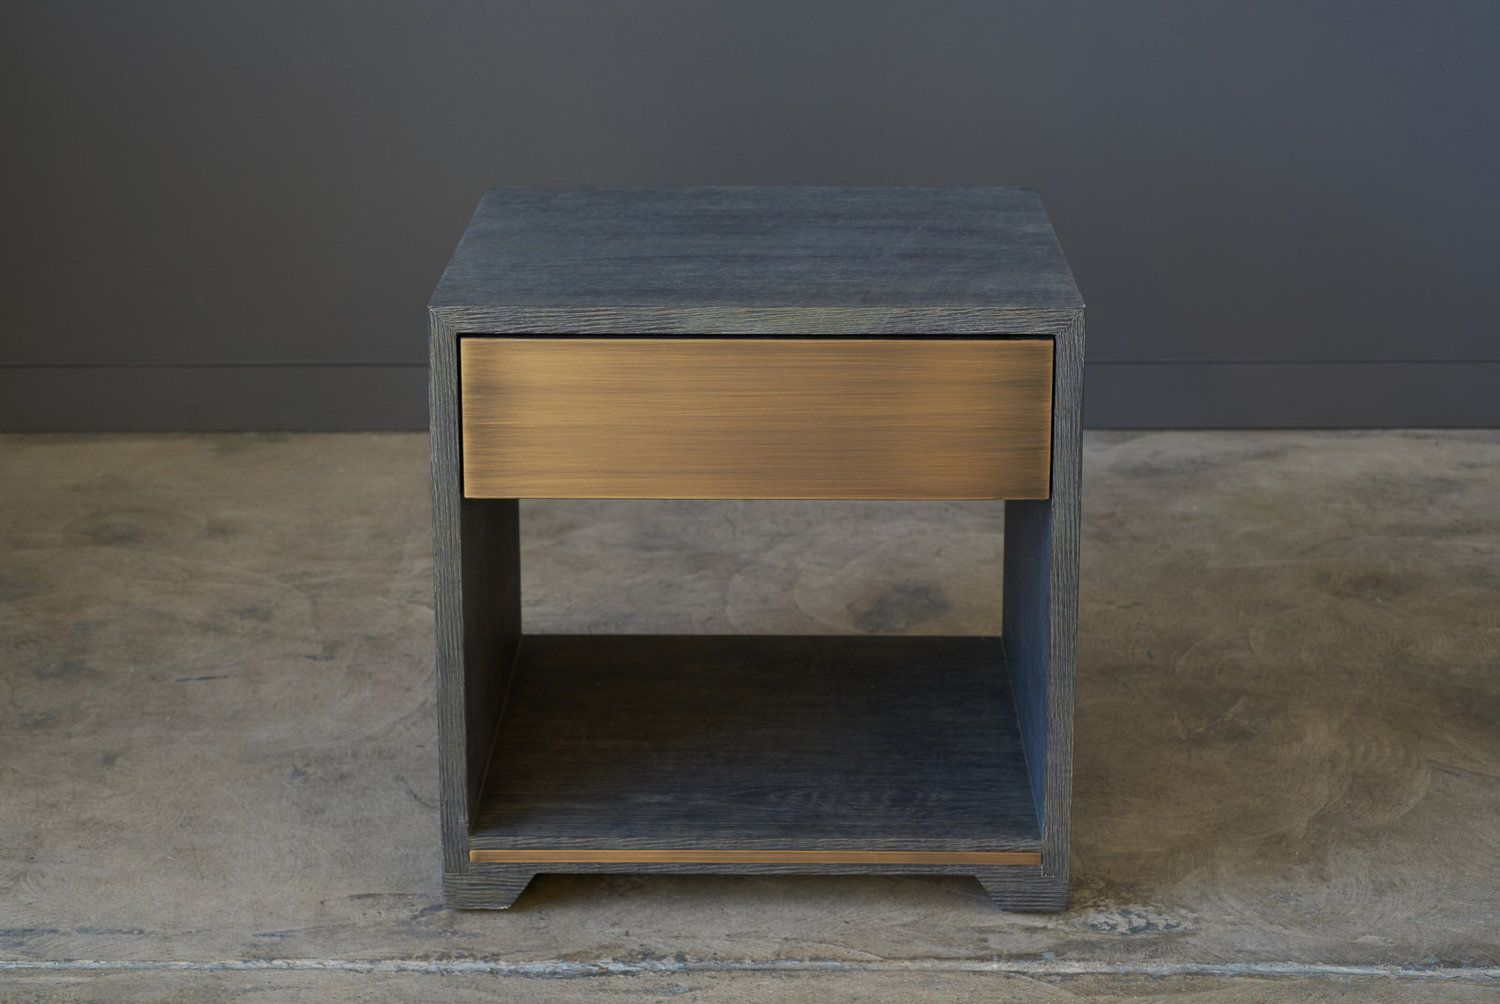 grove side table hudson nursery guest room threshold margate accent ashley furniture entertainment centers allen jones dining napkins piece counter height set coffee fold top tall